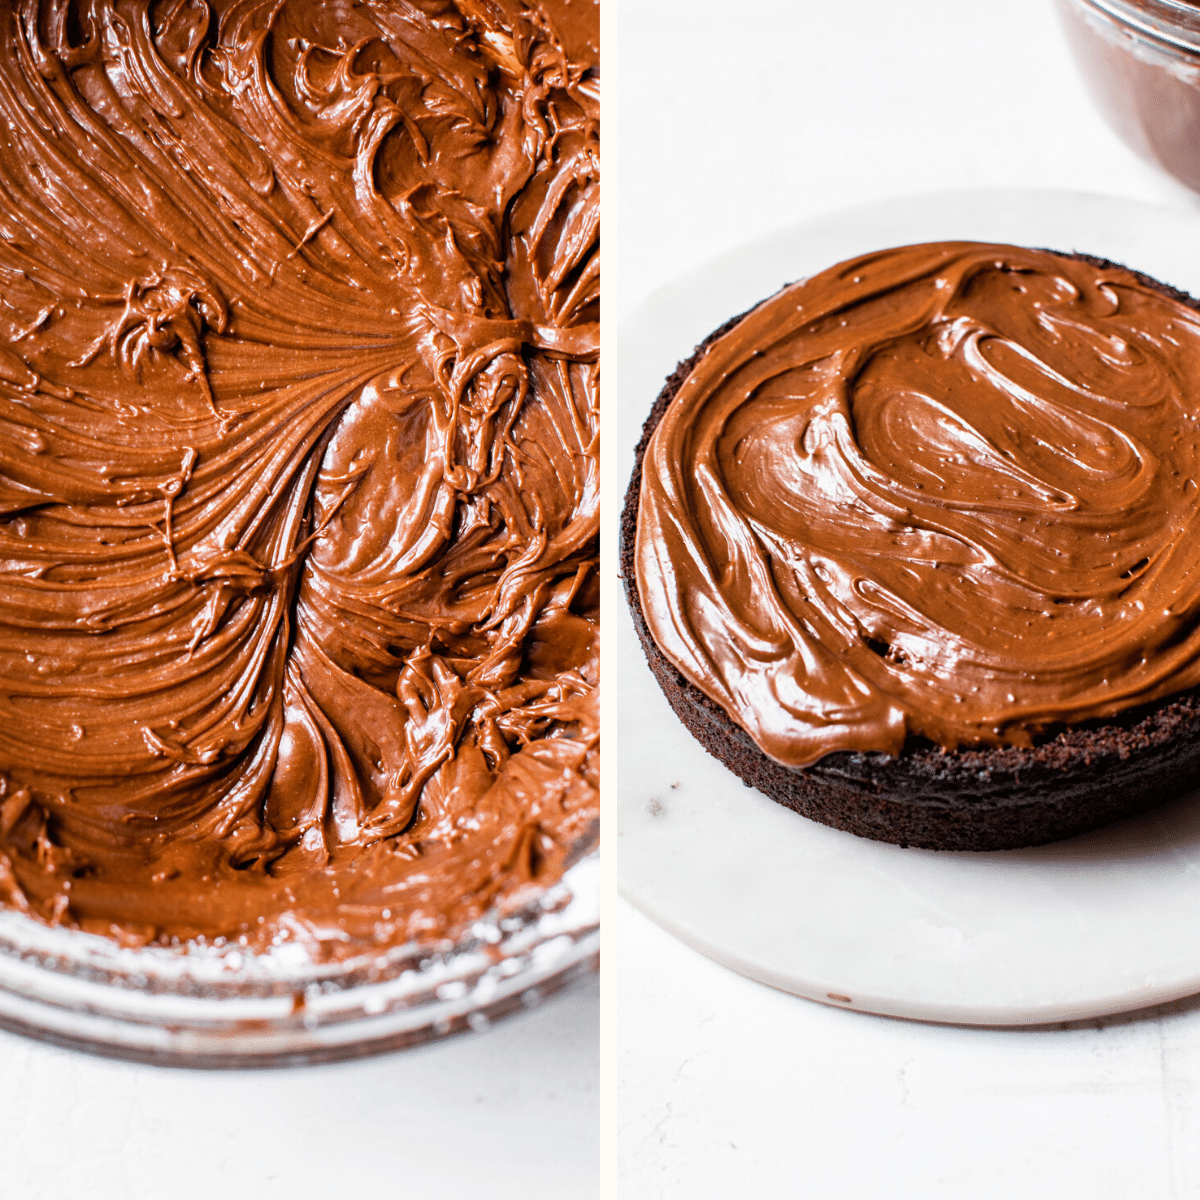 cake topped with chocolate icing